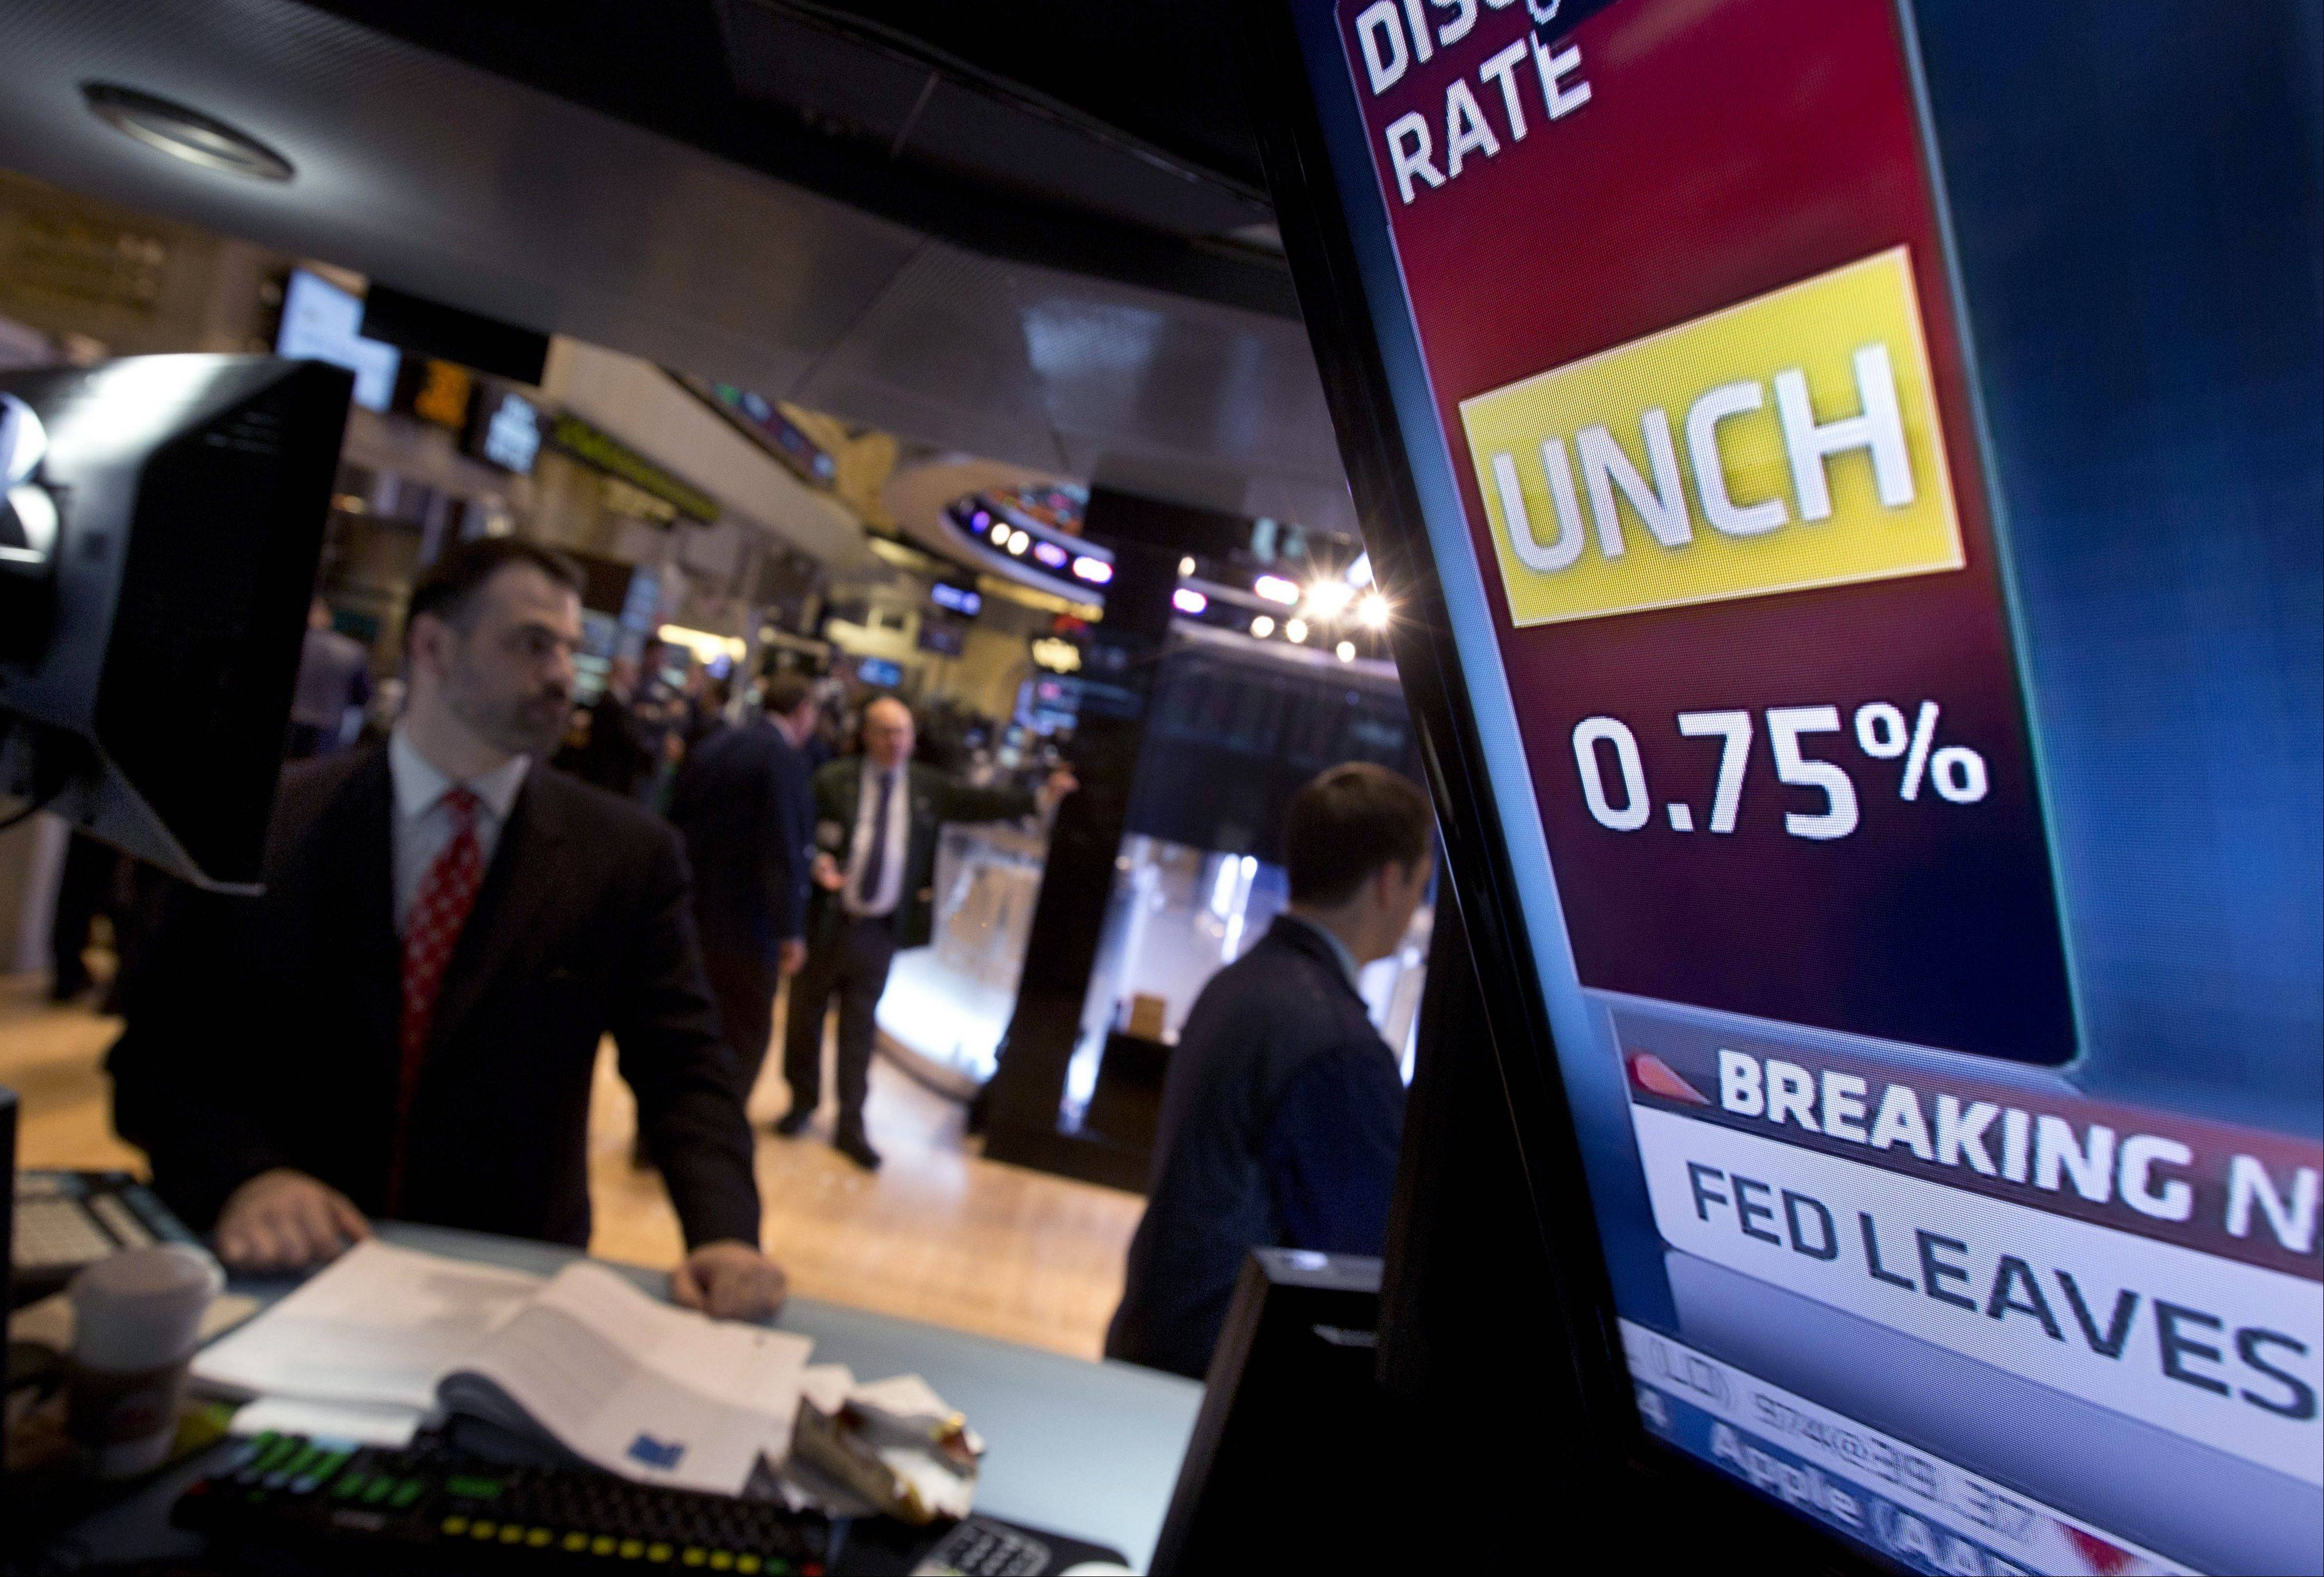 U.S. stocks fell, dragging benchmark indexes from five-year highs, as the Federal Reserve said it will maintain its program to buy securities after the economy unexpectedly shrank in the fourth quarter.